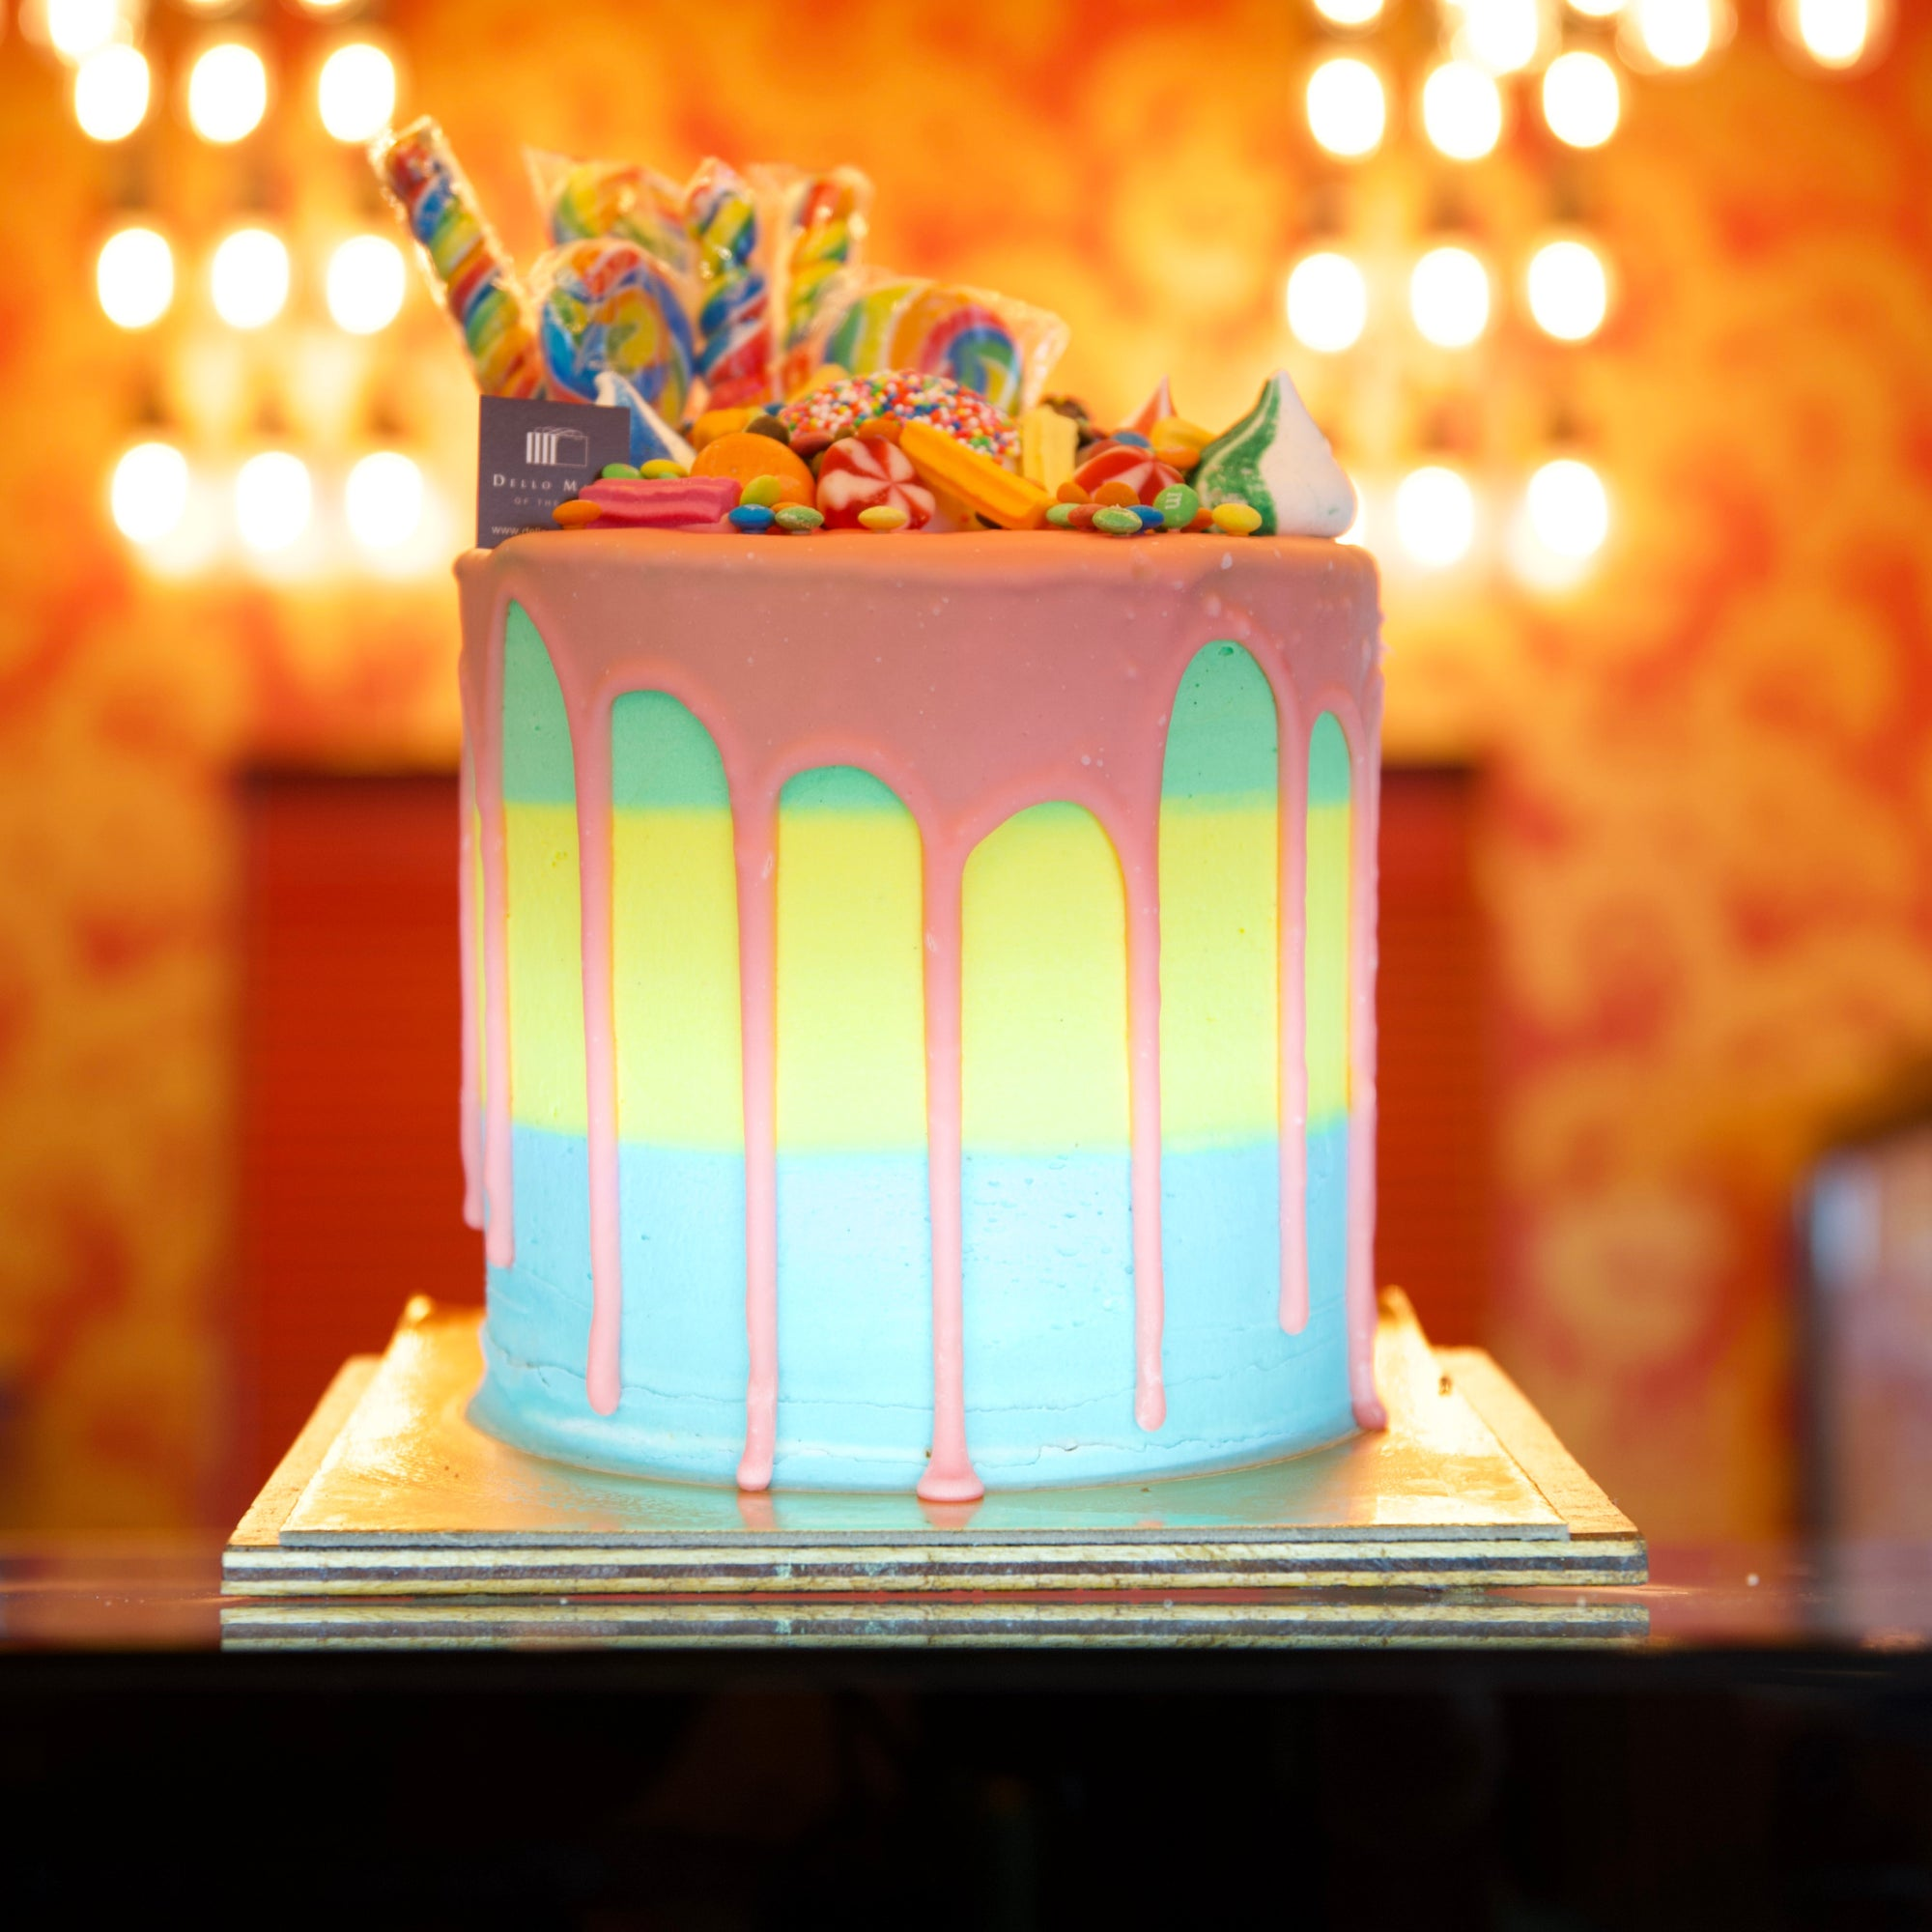 Birthday Cake with Pink drips and rainbow frosting topped with lollies